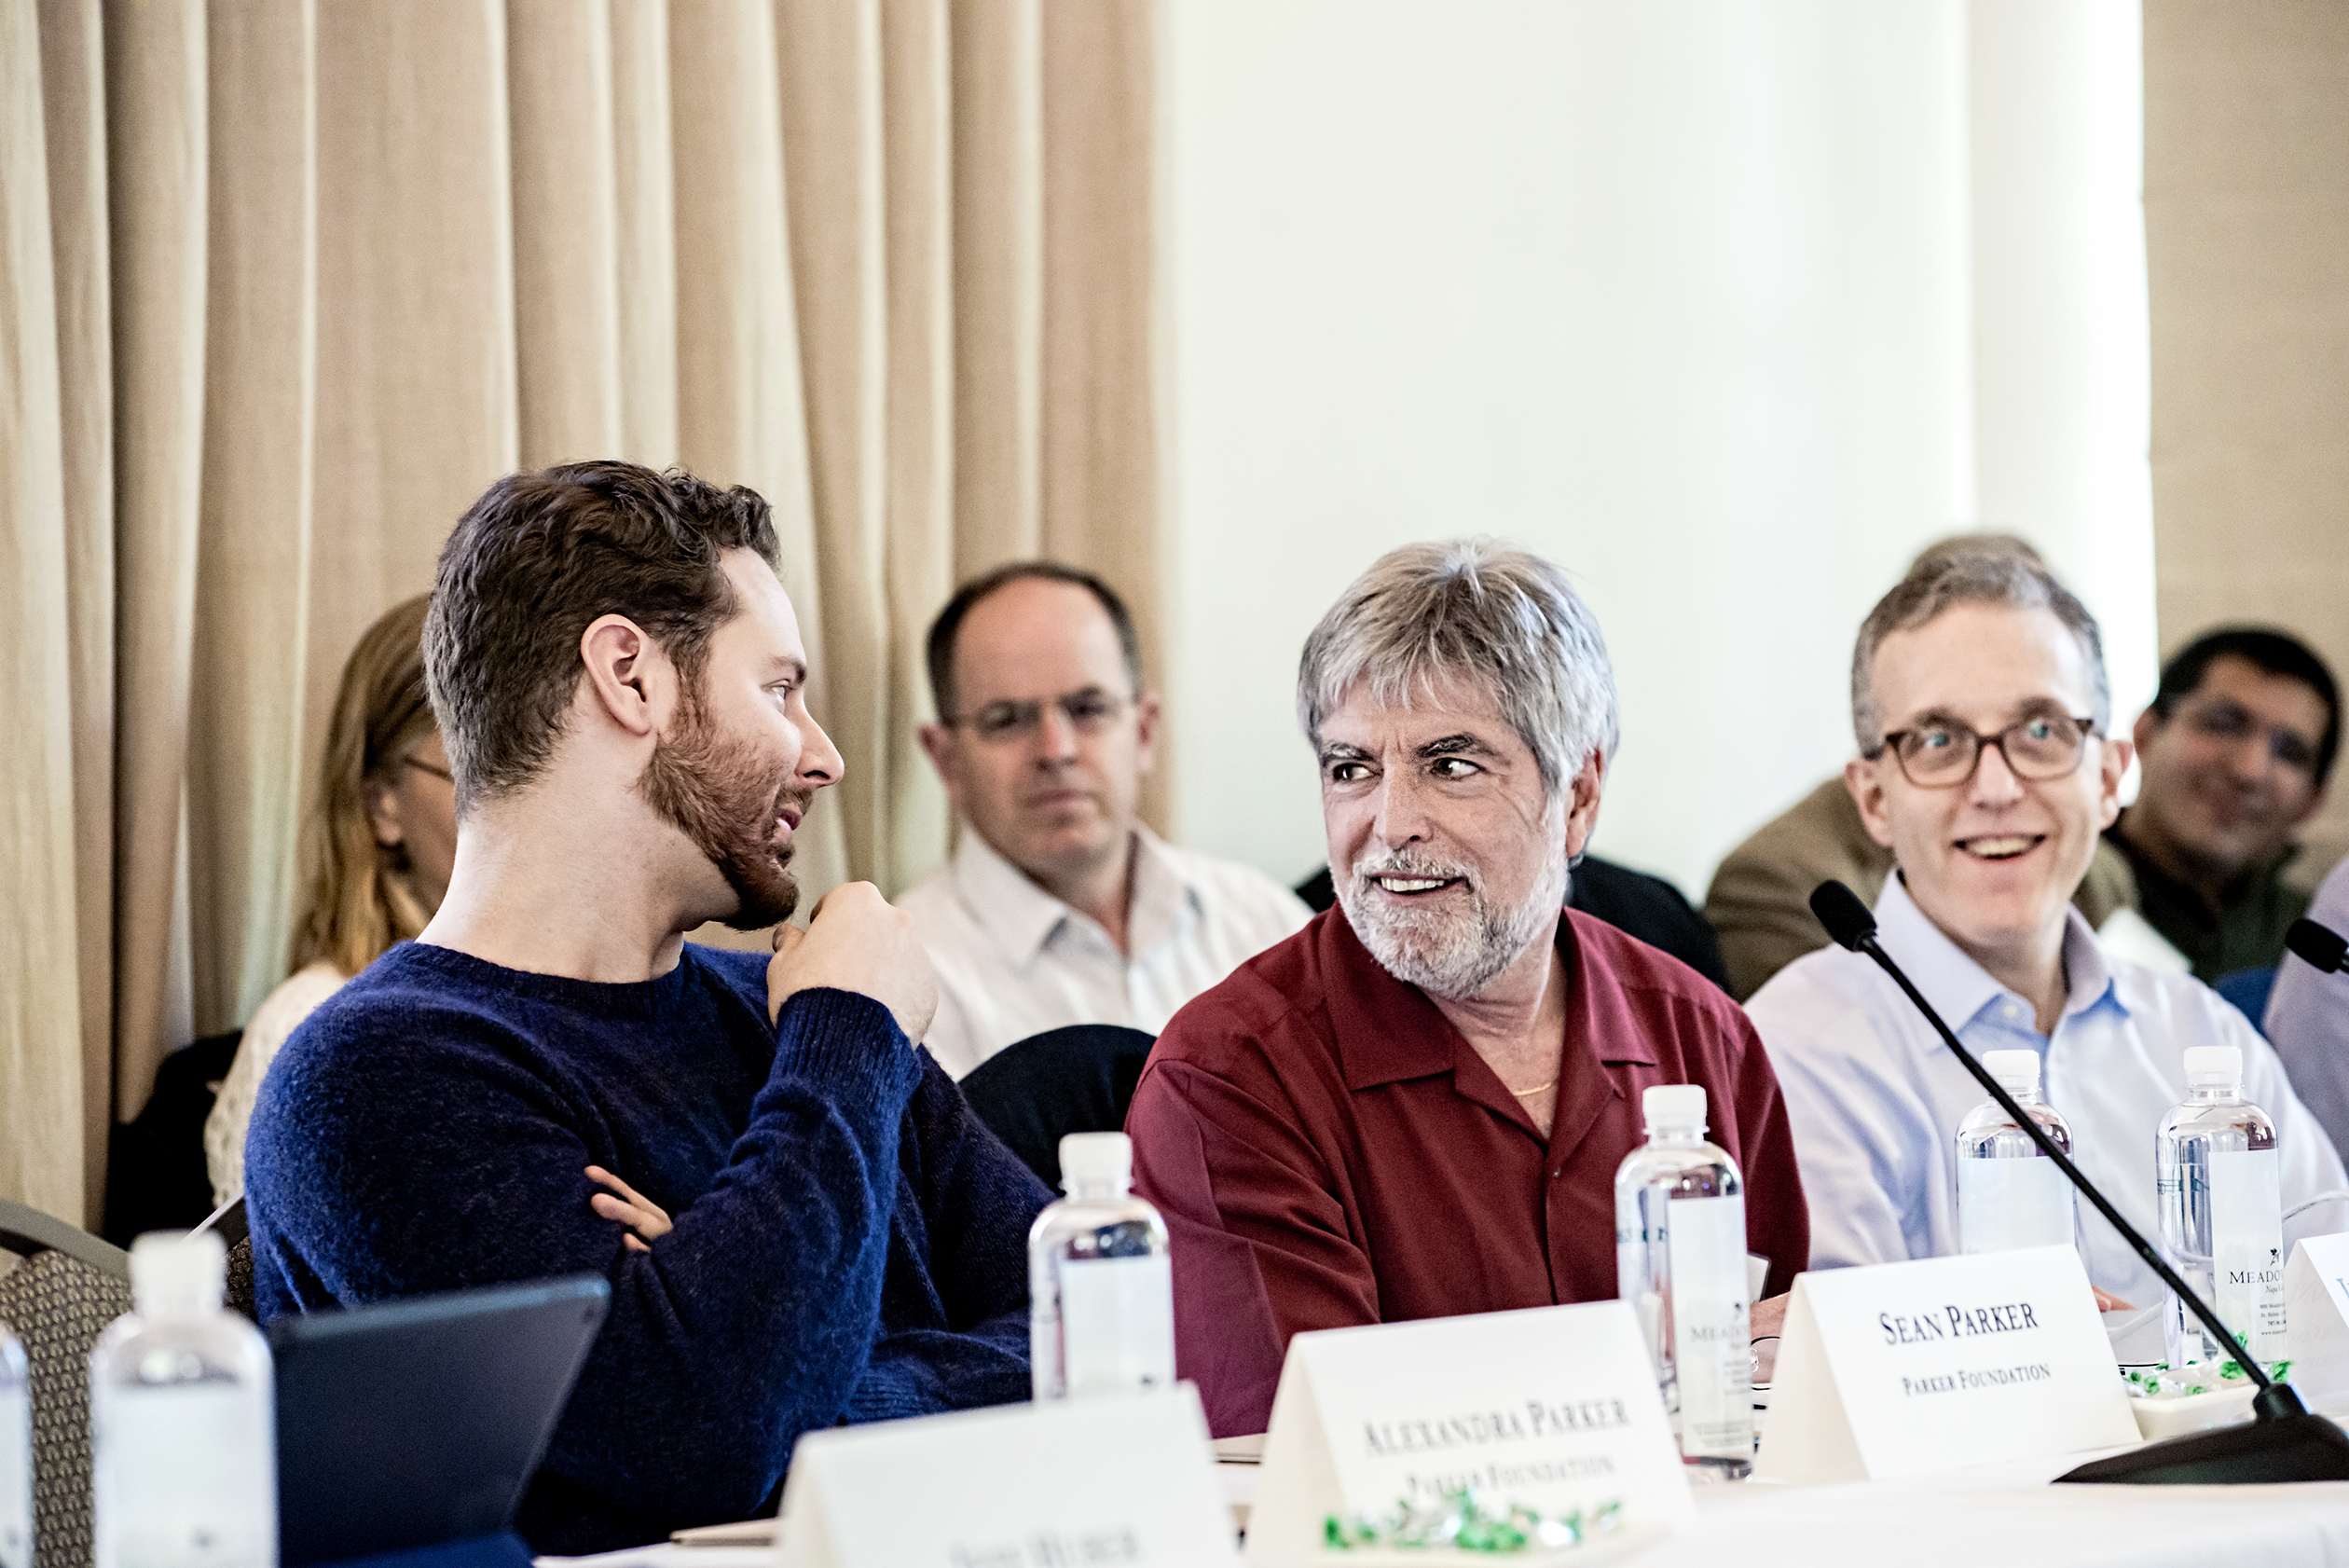 Tech Entrepeneur Sean Parker (left) talks to Jeff Bluestone (center), CEO and president of the Parker Institute for Cancer Immunotherapy, during a retreatat the Meadowood resort in St. Helena, CA.Photo by Winni Wintermeyer for Fortune. April 4, 2016.